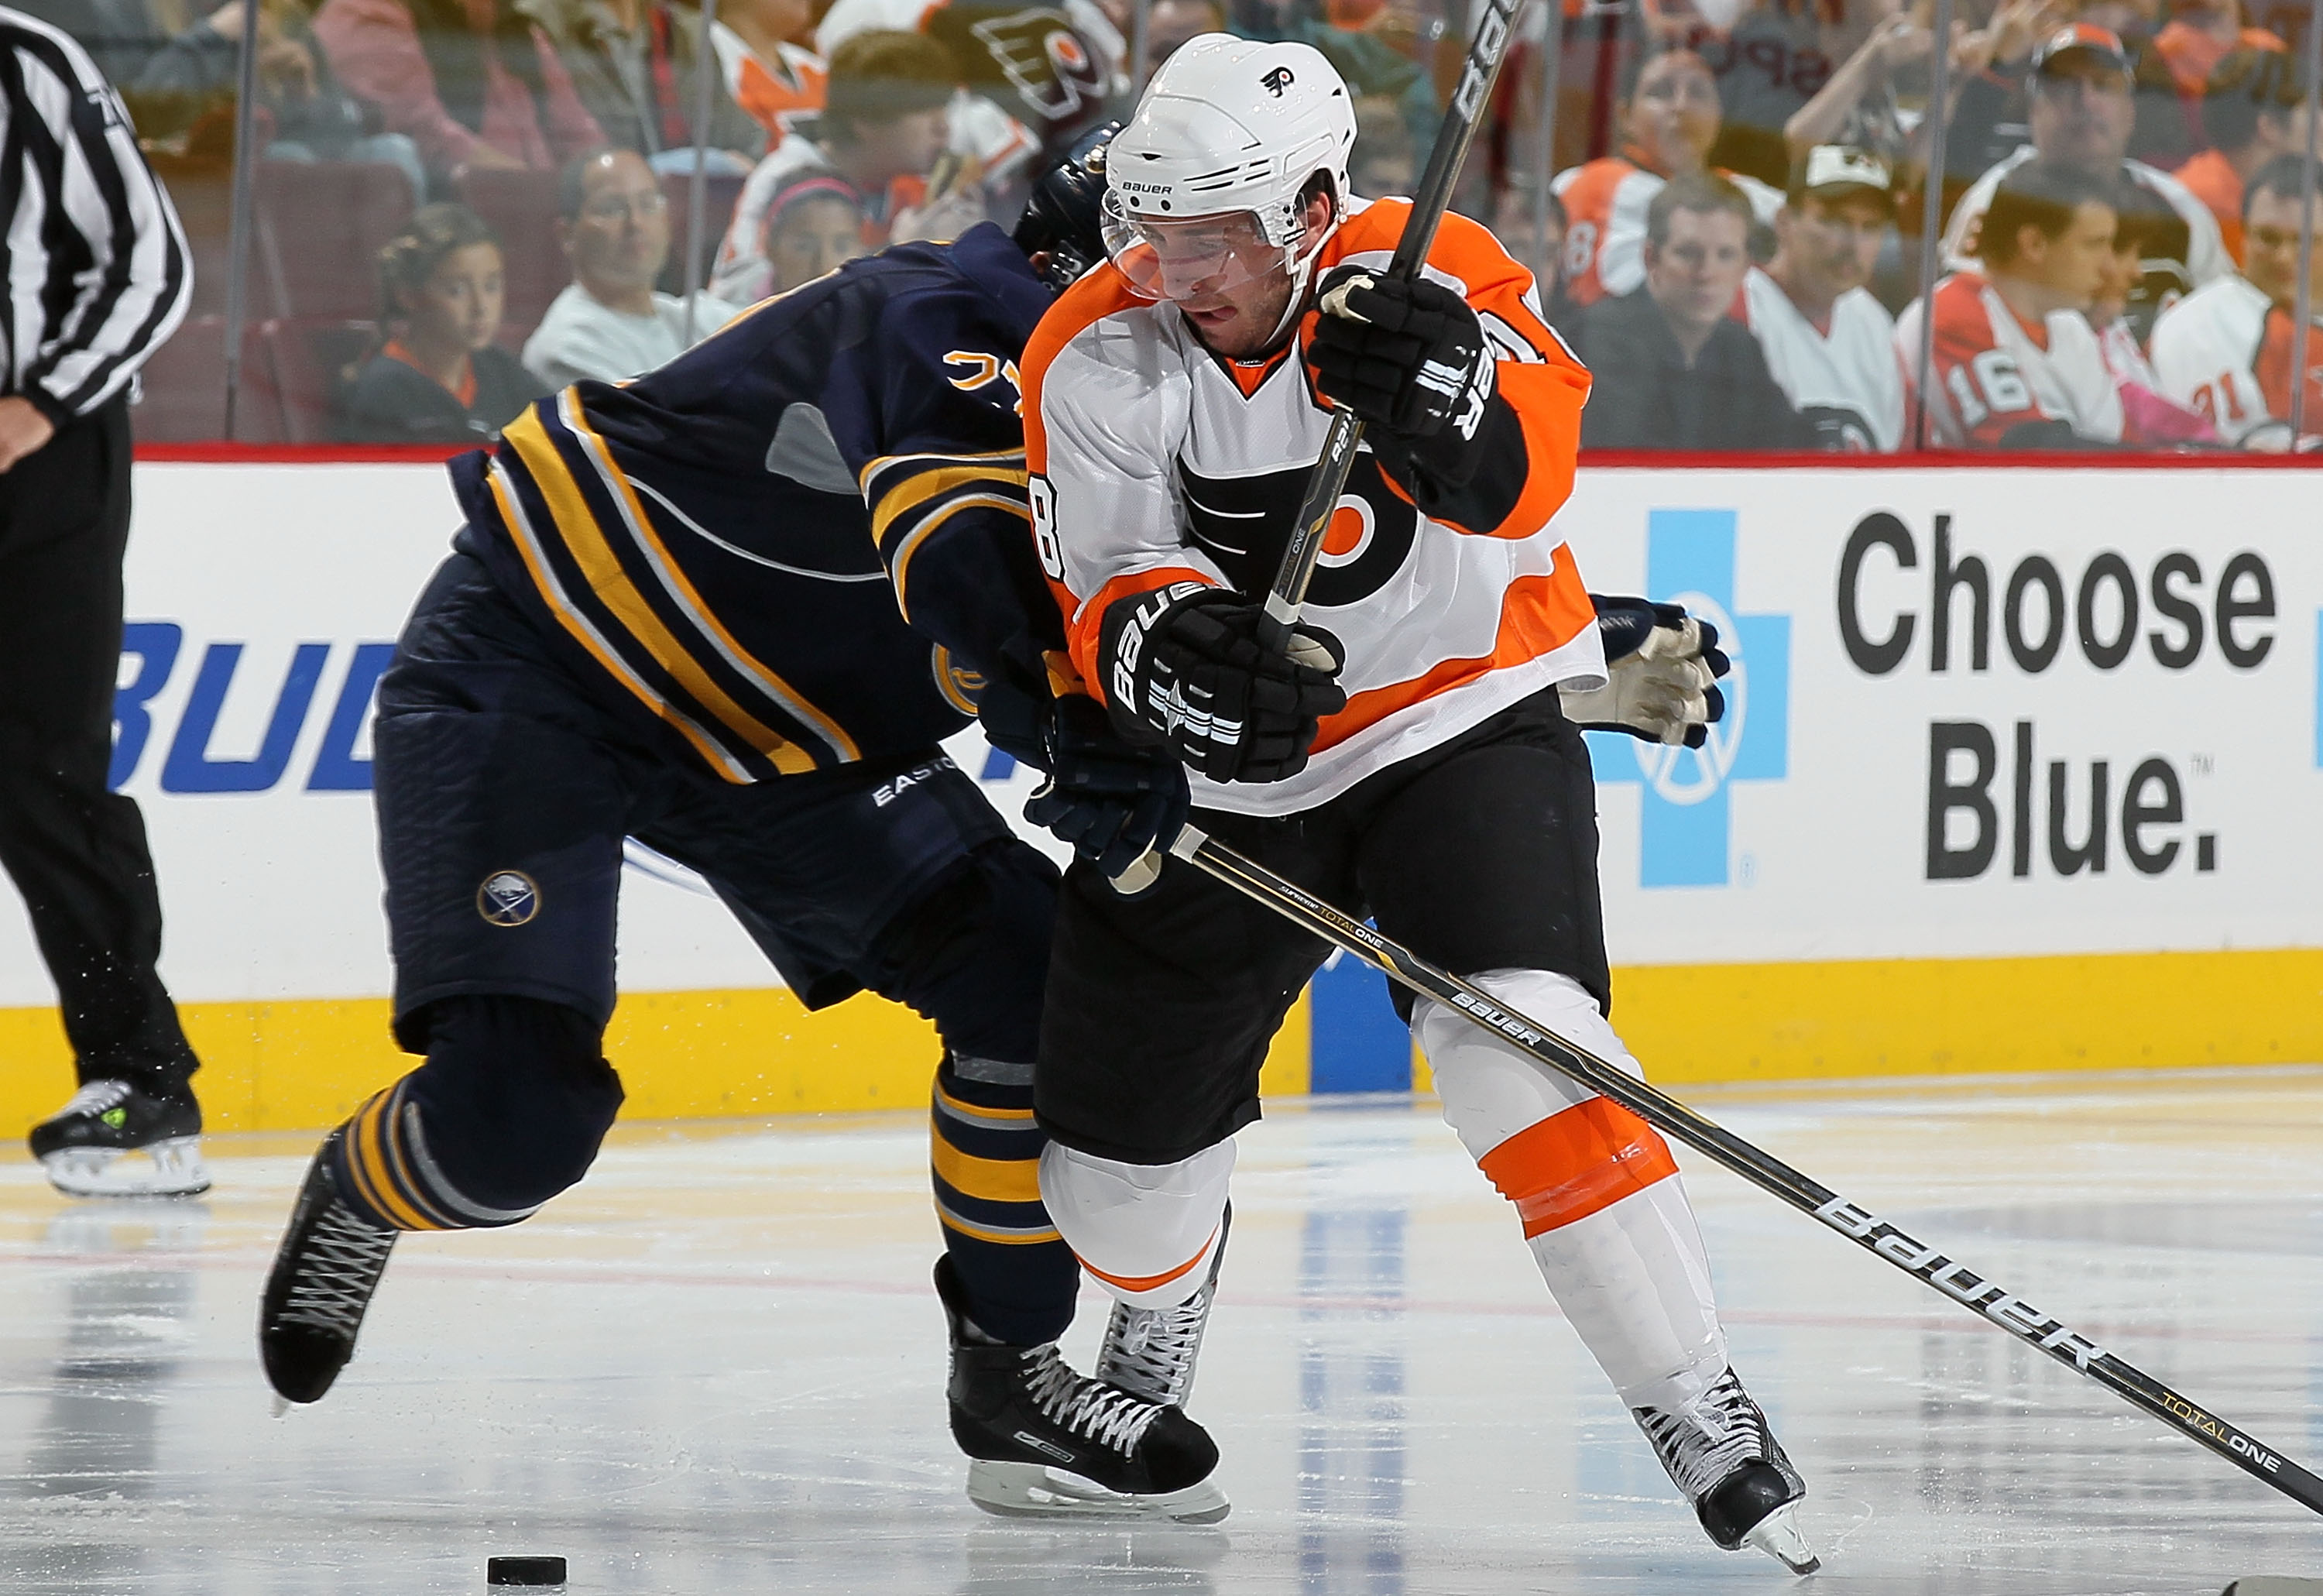 PHILADELPHIA - OCTOBER 01:  Mike Richards #18 of the Philadelphia Flyers makes a move against Shaone Morrisonn #27 of the Buffalo Sabres on October 1, 2010 at Wells Fargo Center in Philadelphia, Pennsylvania.  (Photo by Jim McIsaac/Getty Images)